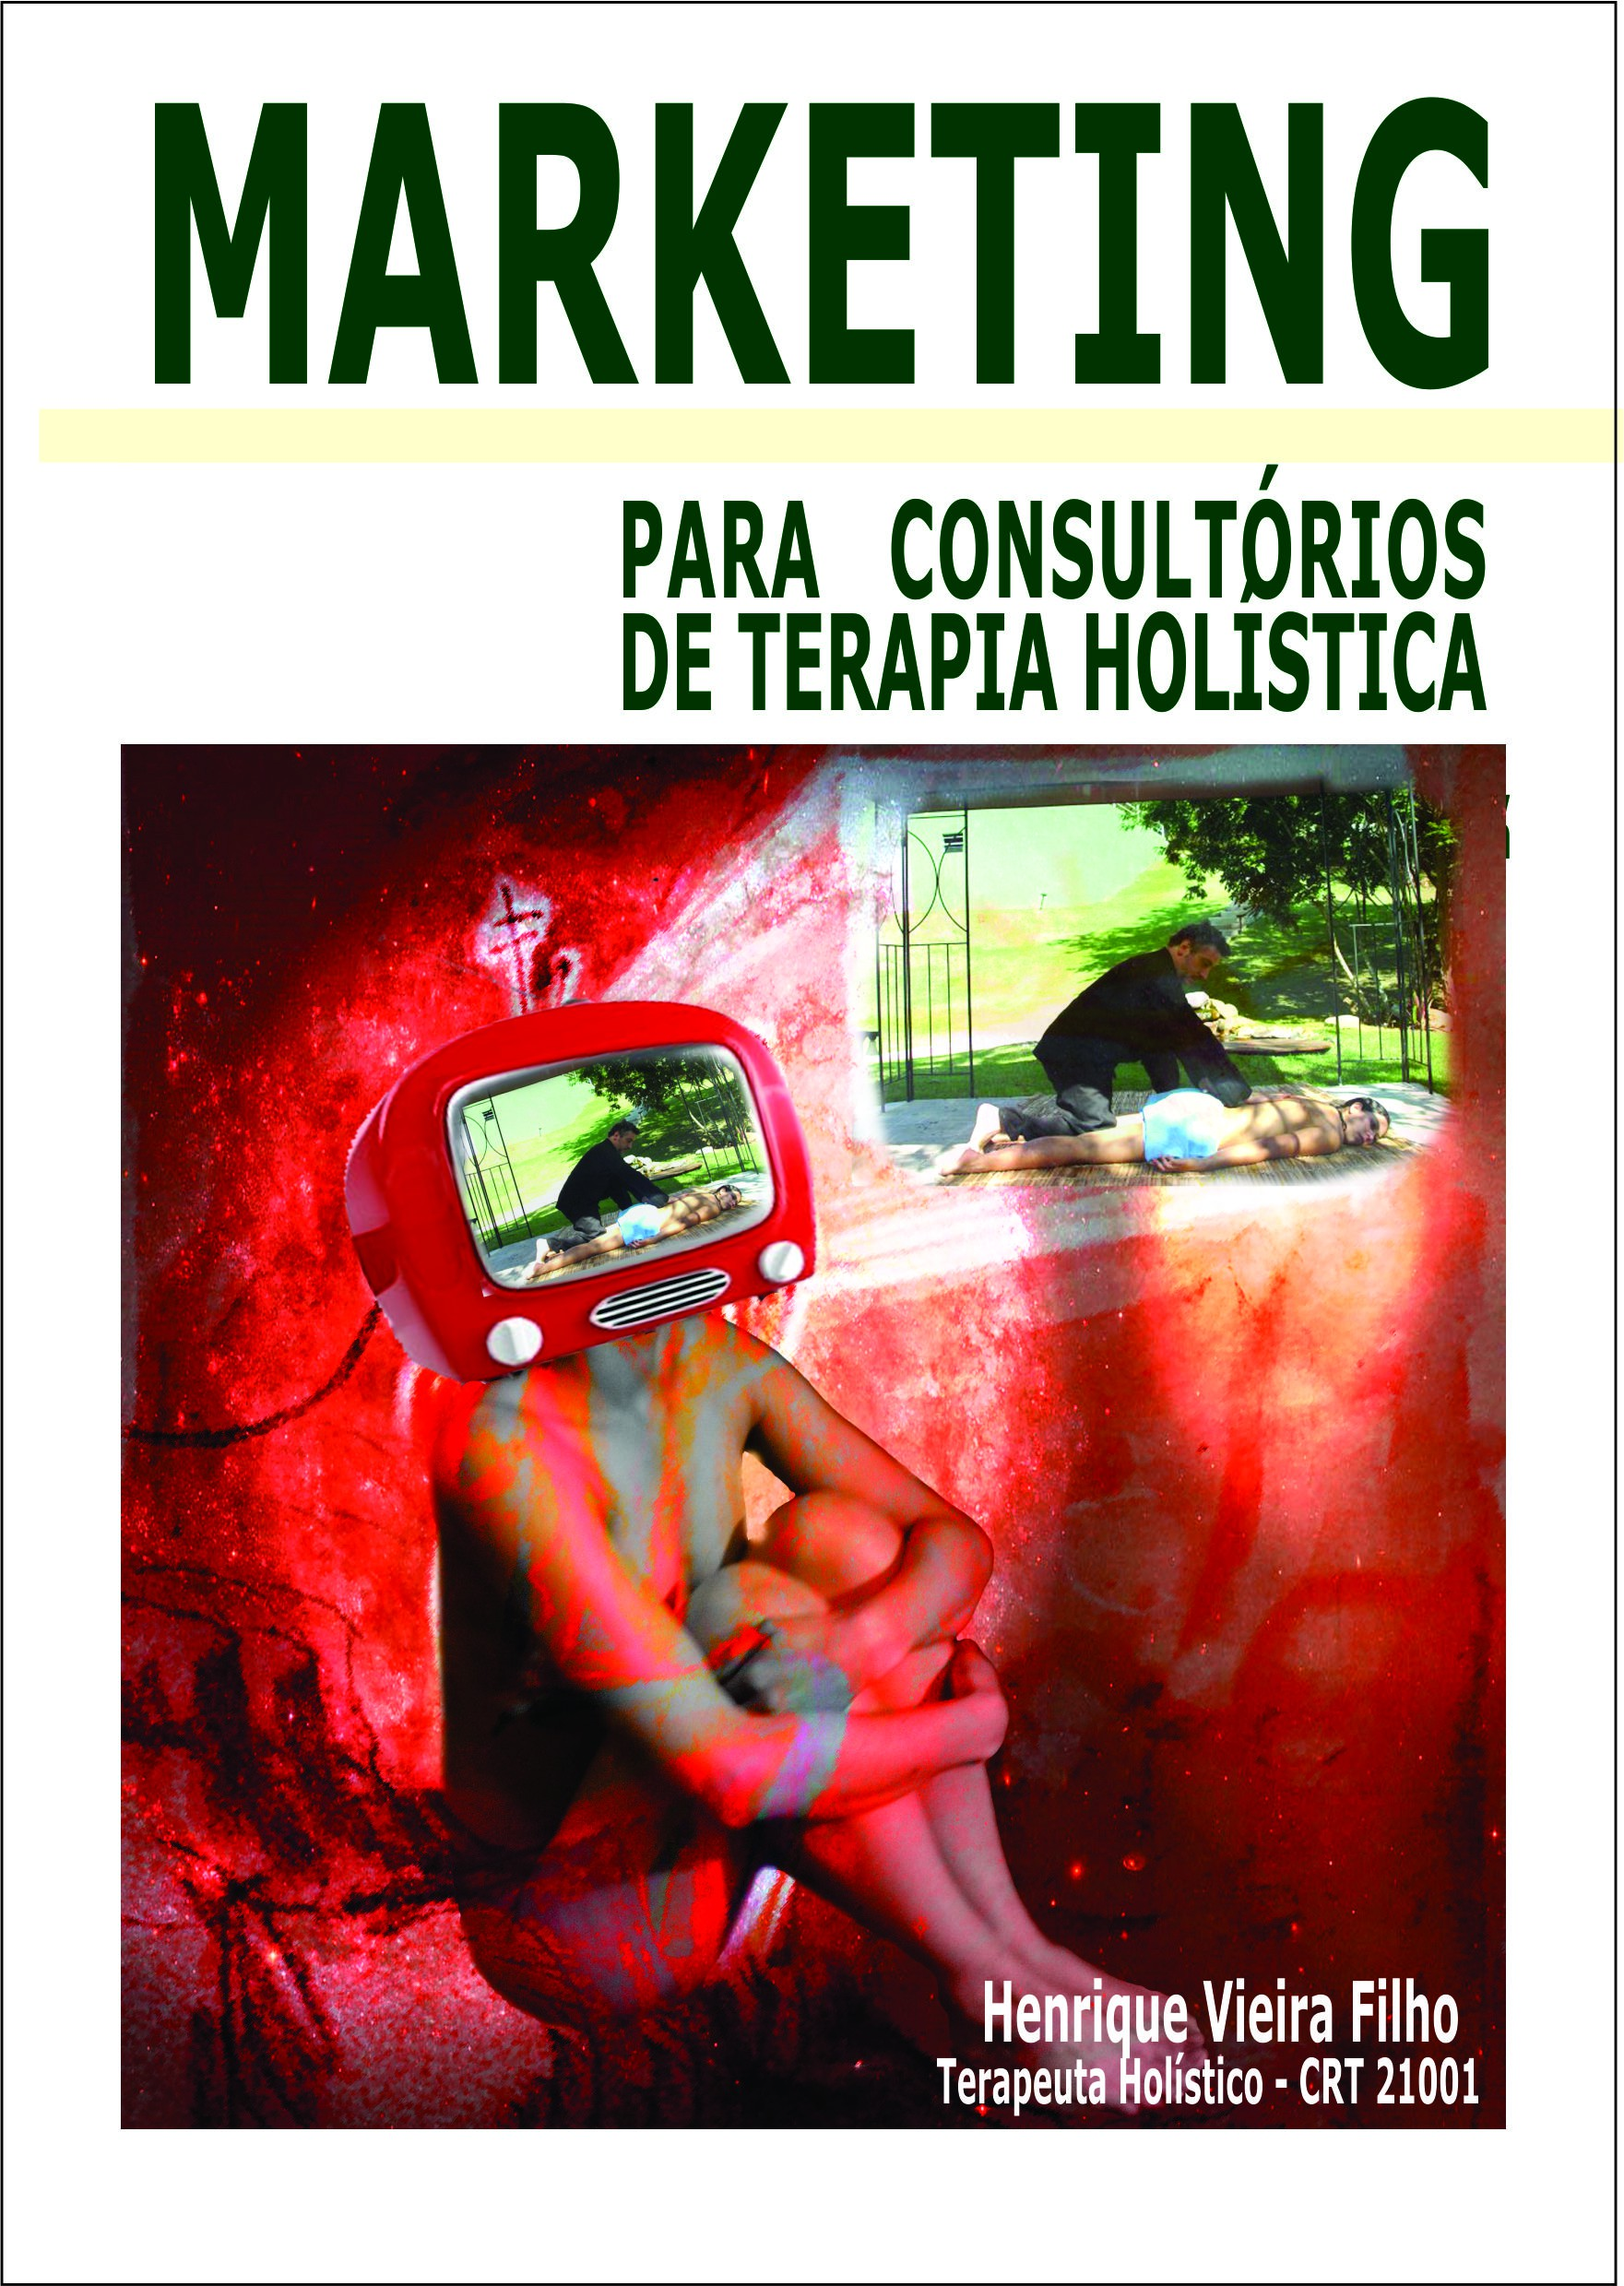 MARKETING – Para Consultórios de Terapia Holística